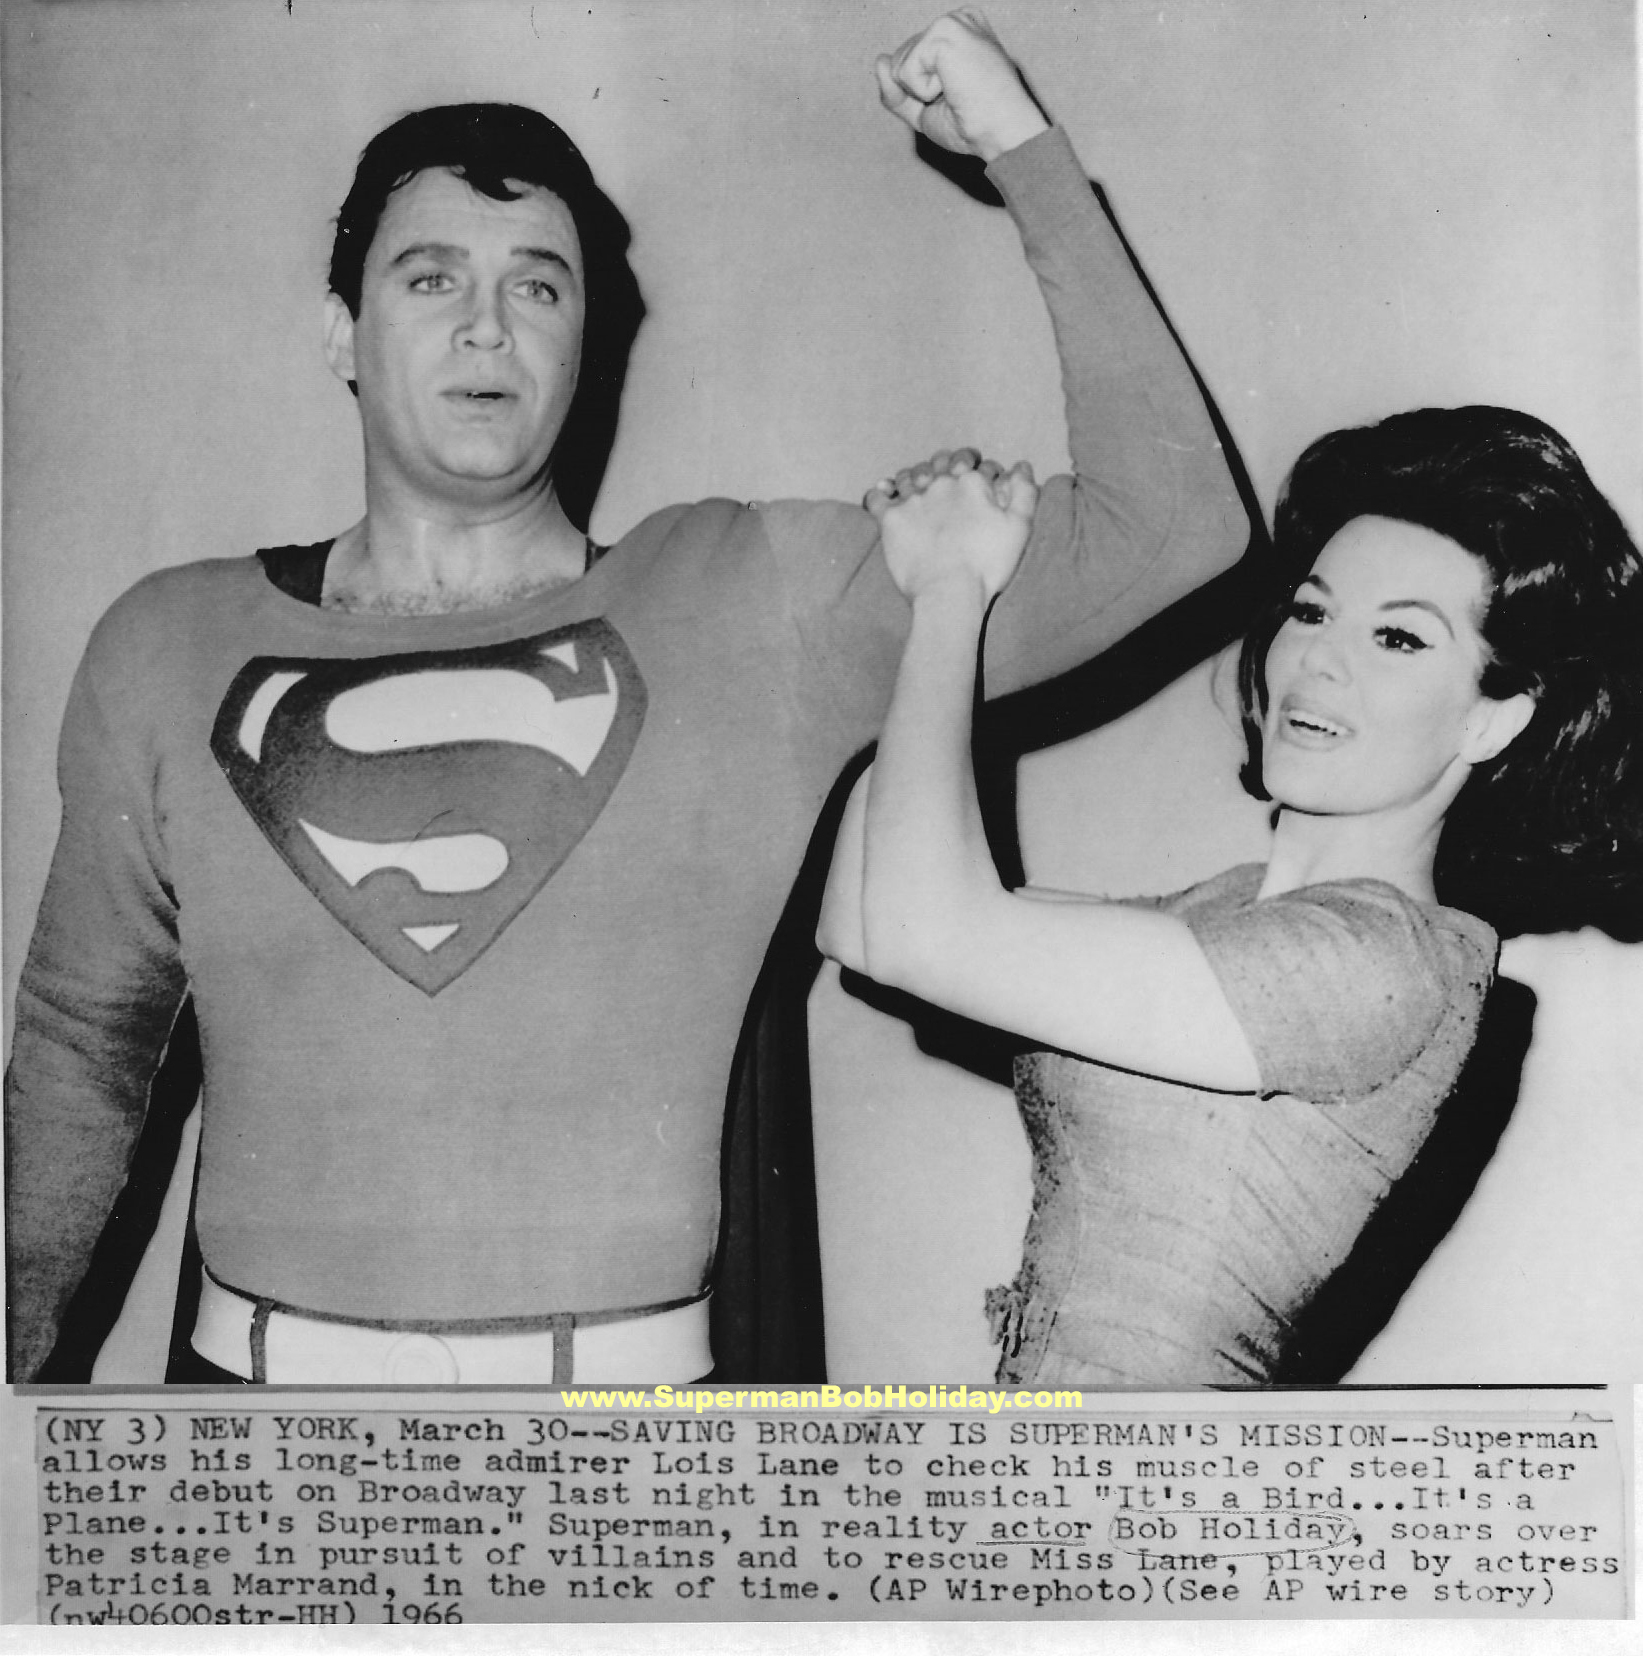 Superman and Lois Lane show off for the cameras.